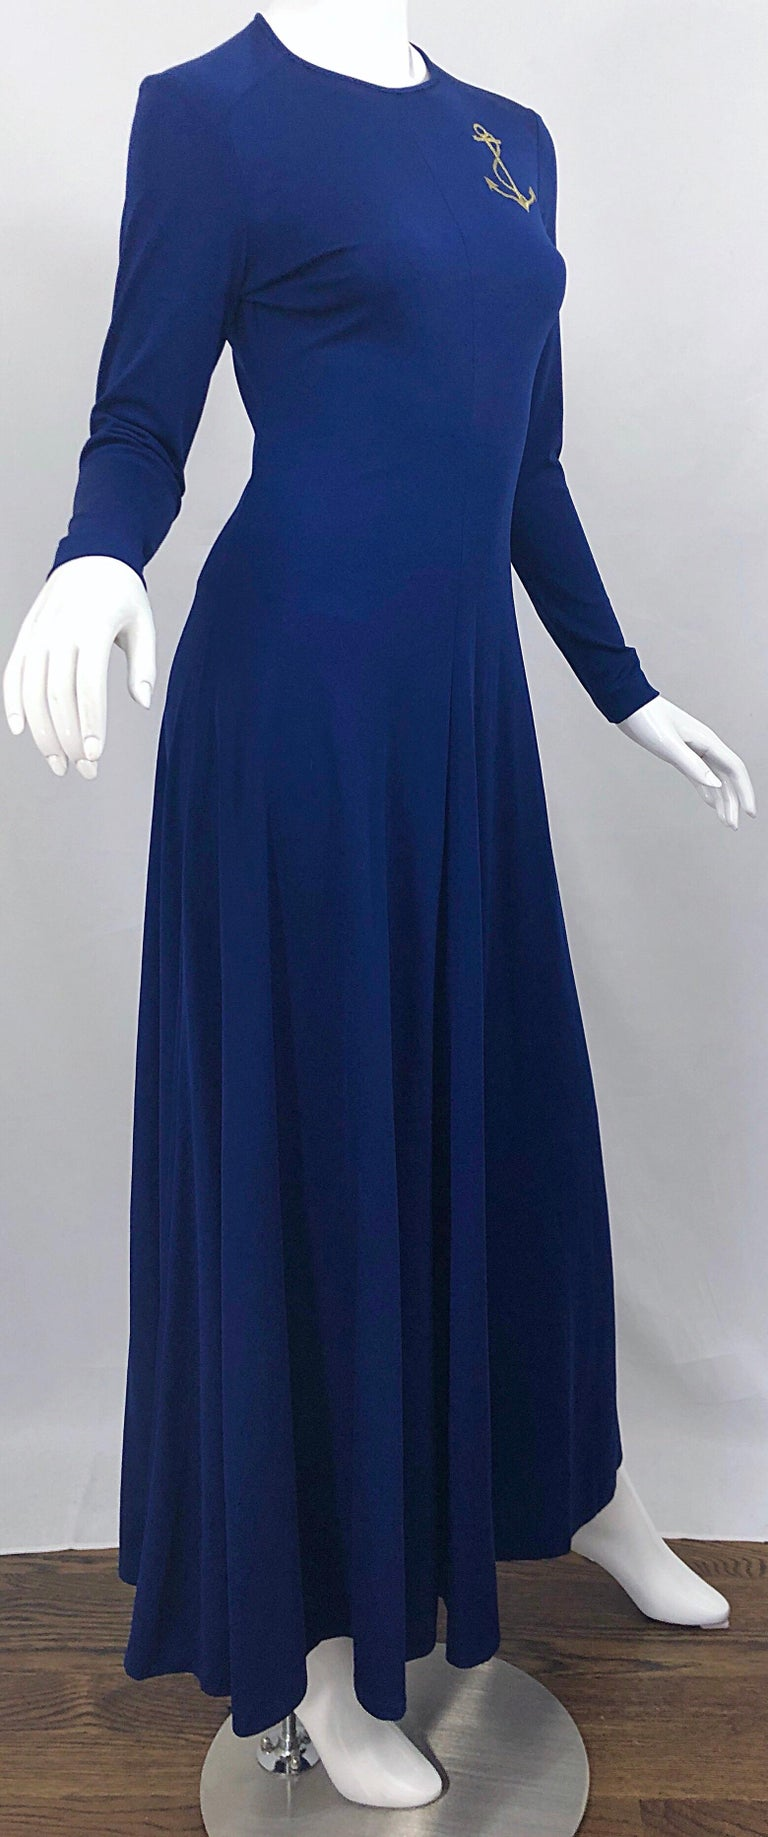 Amazing 1970s Nautical Navy Blue + Gold Anchor Patch Vintage Jersey maxi Dress For Sale 3